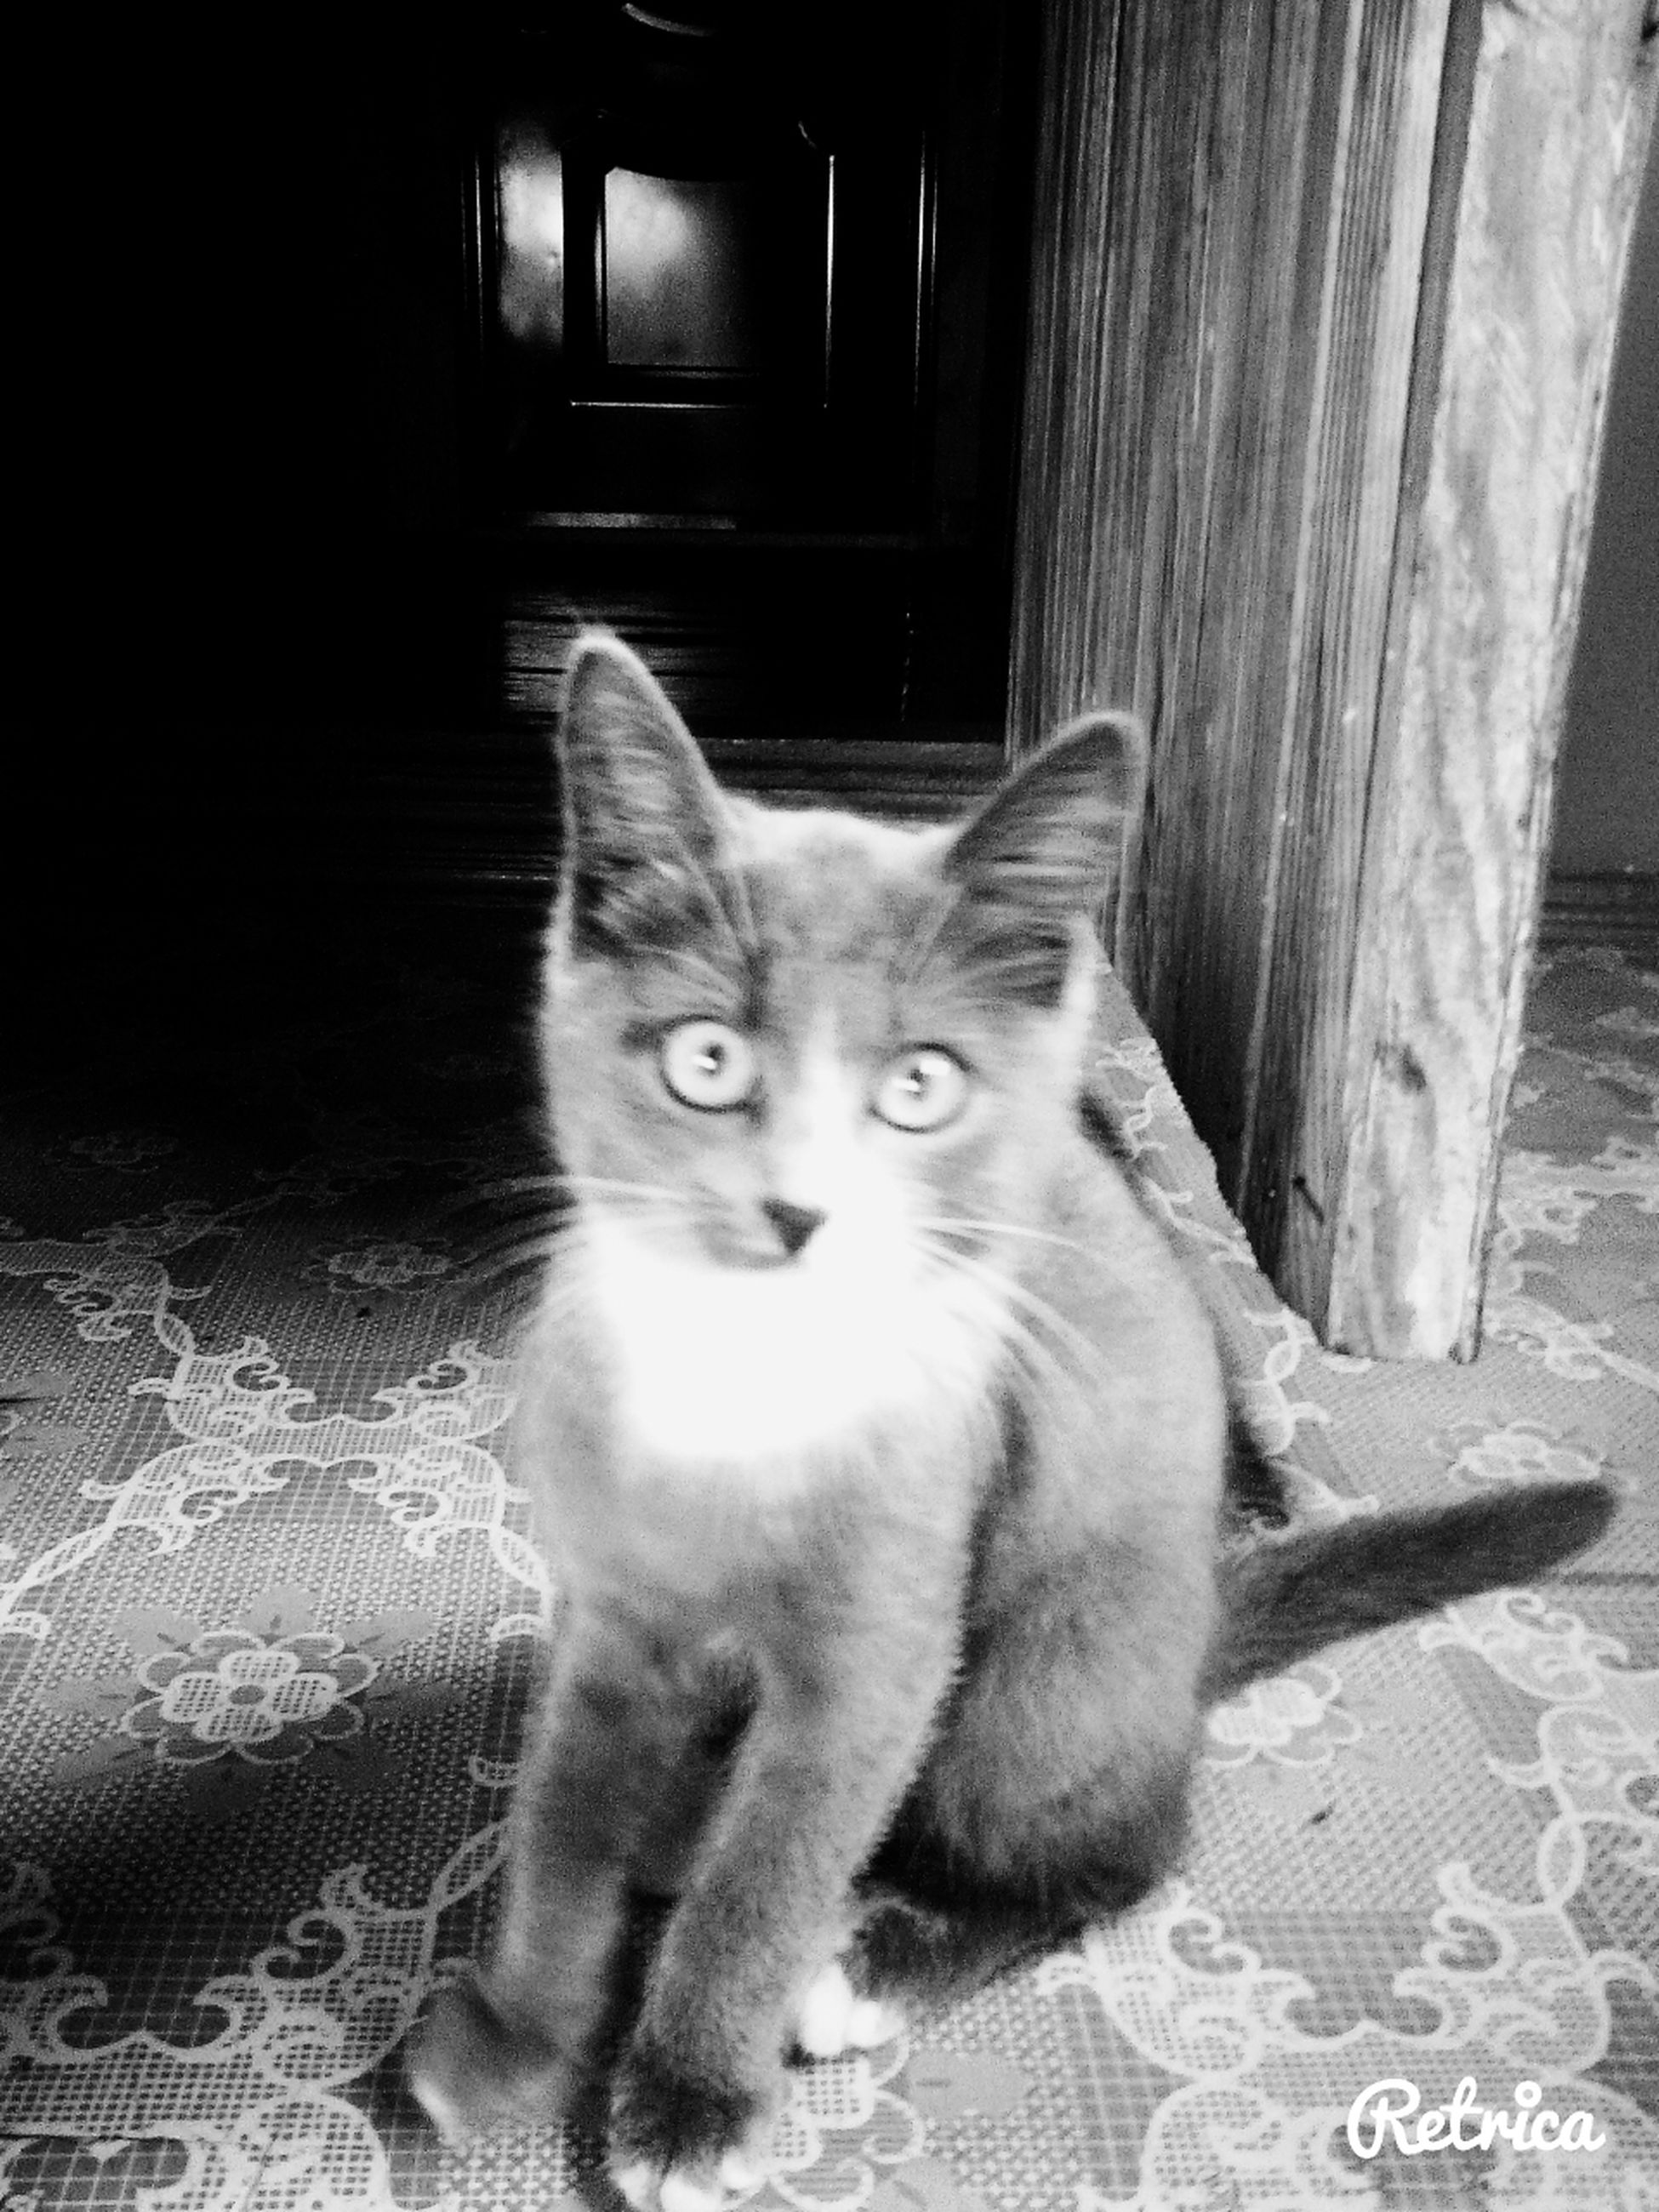 pets, domestic cat, domestic animals, animal themes, mammal, one animal, cat, feline, portrait, looking at camera, whisker, indoors, sitting, alertness, staring, relaxation, home interior, no people, zoology